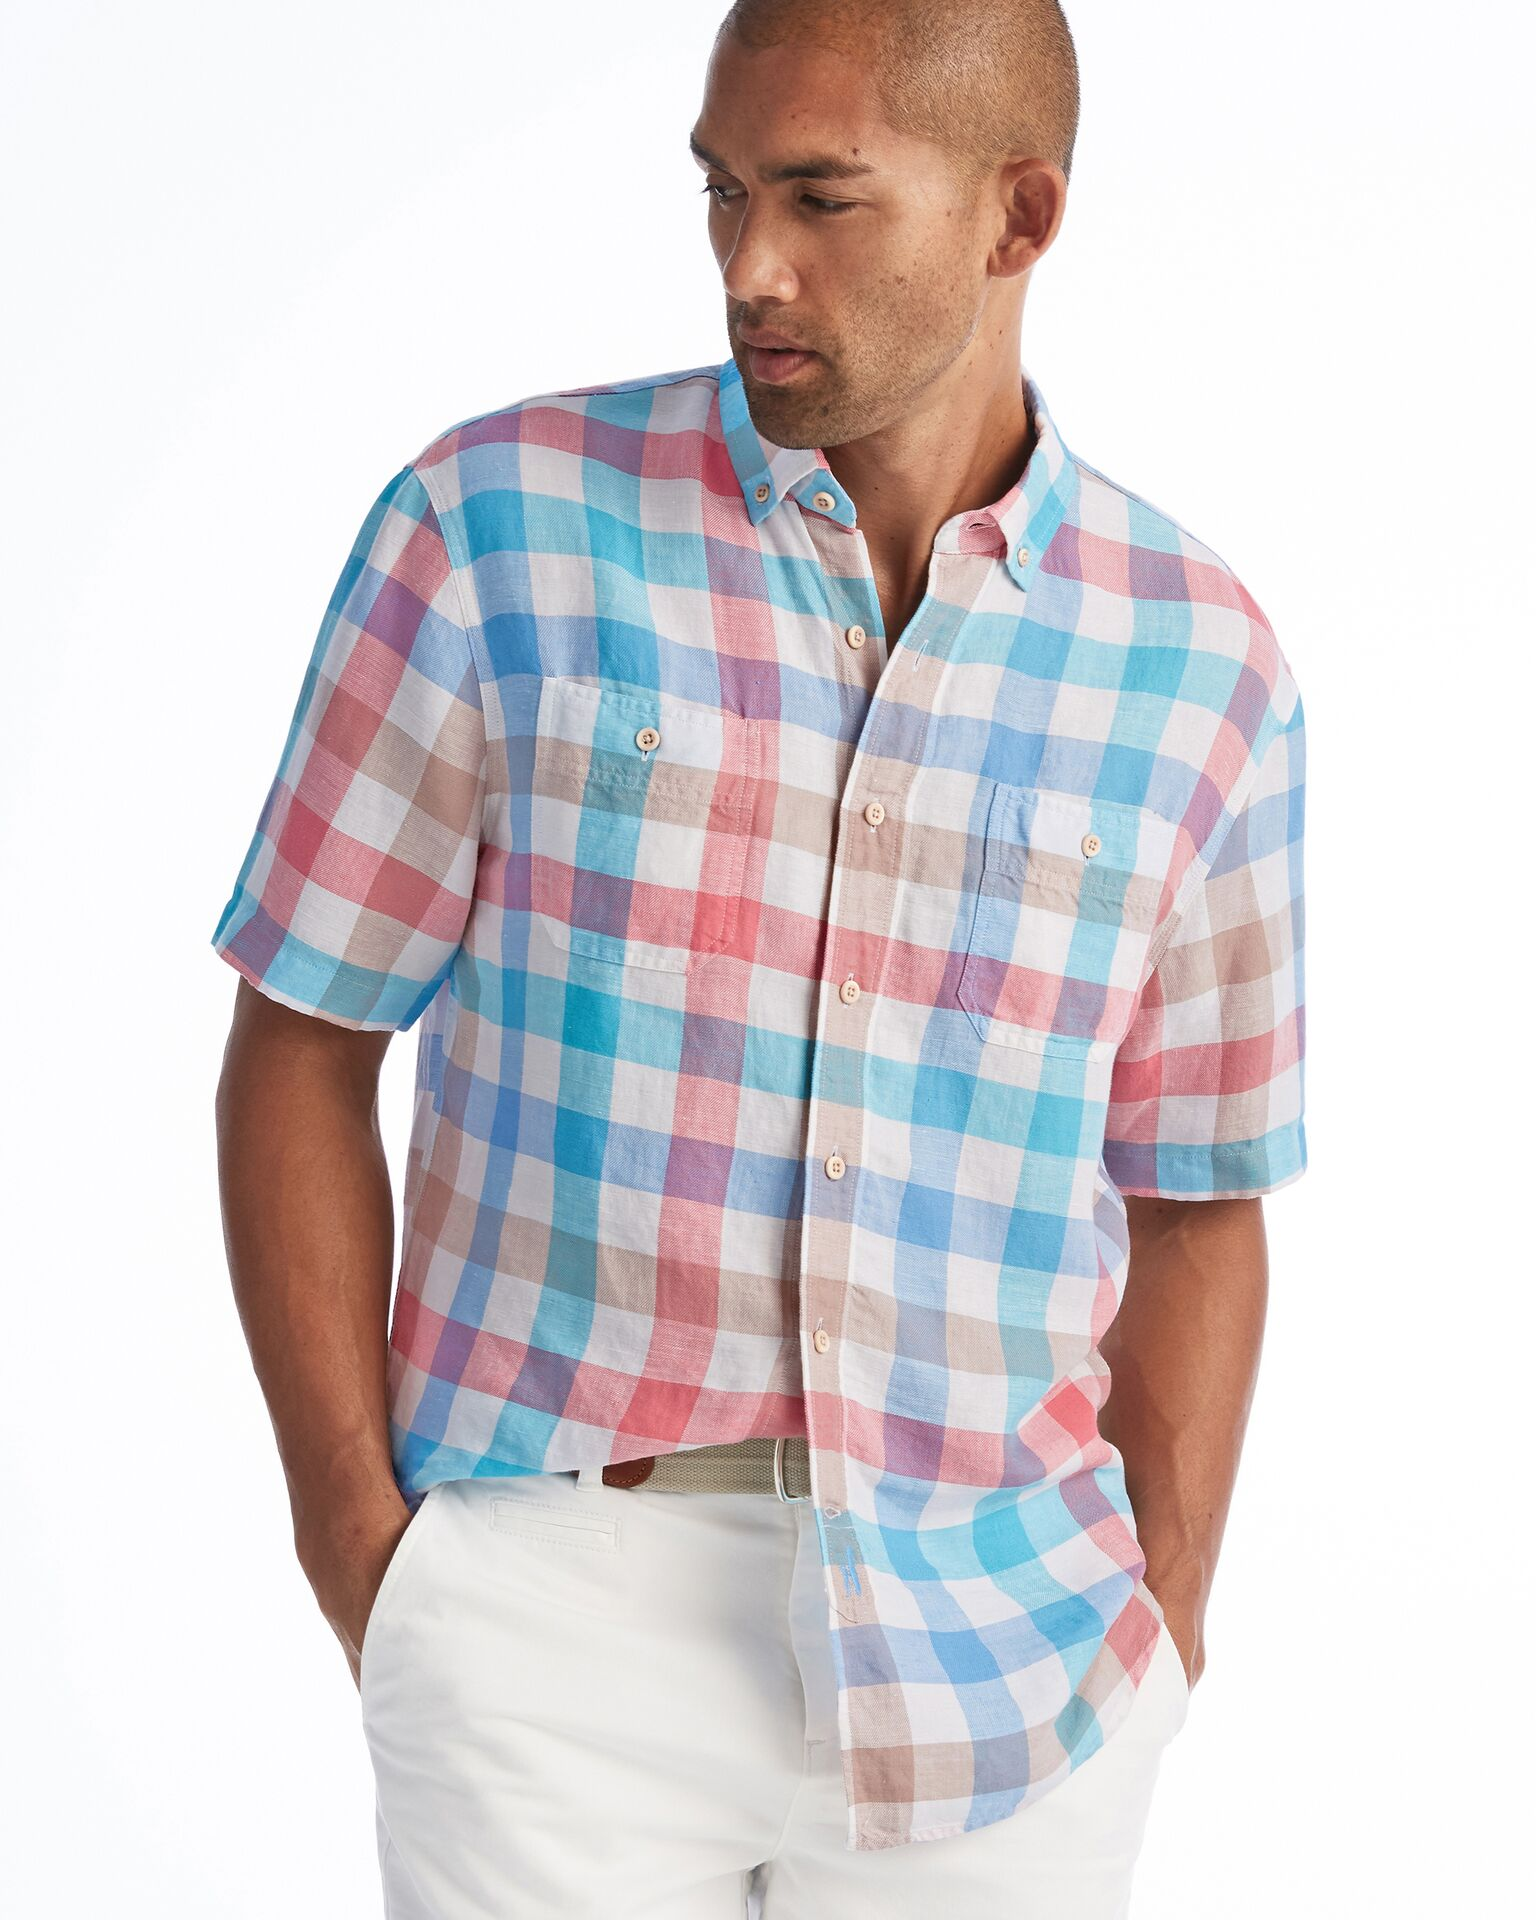 Presley Hangin' Out Button Down Short Sleeve Shirt (White)